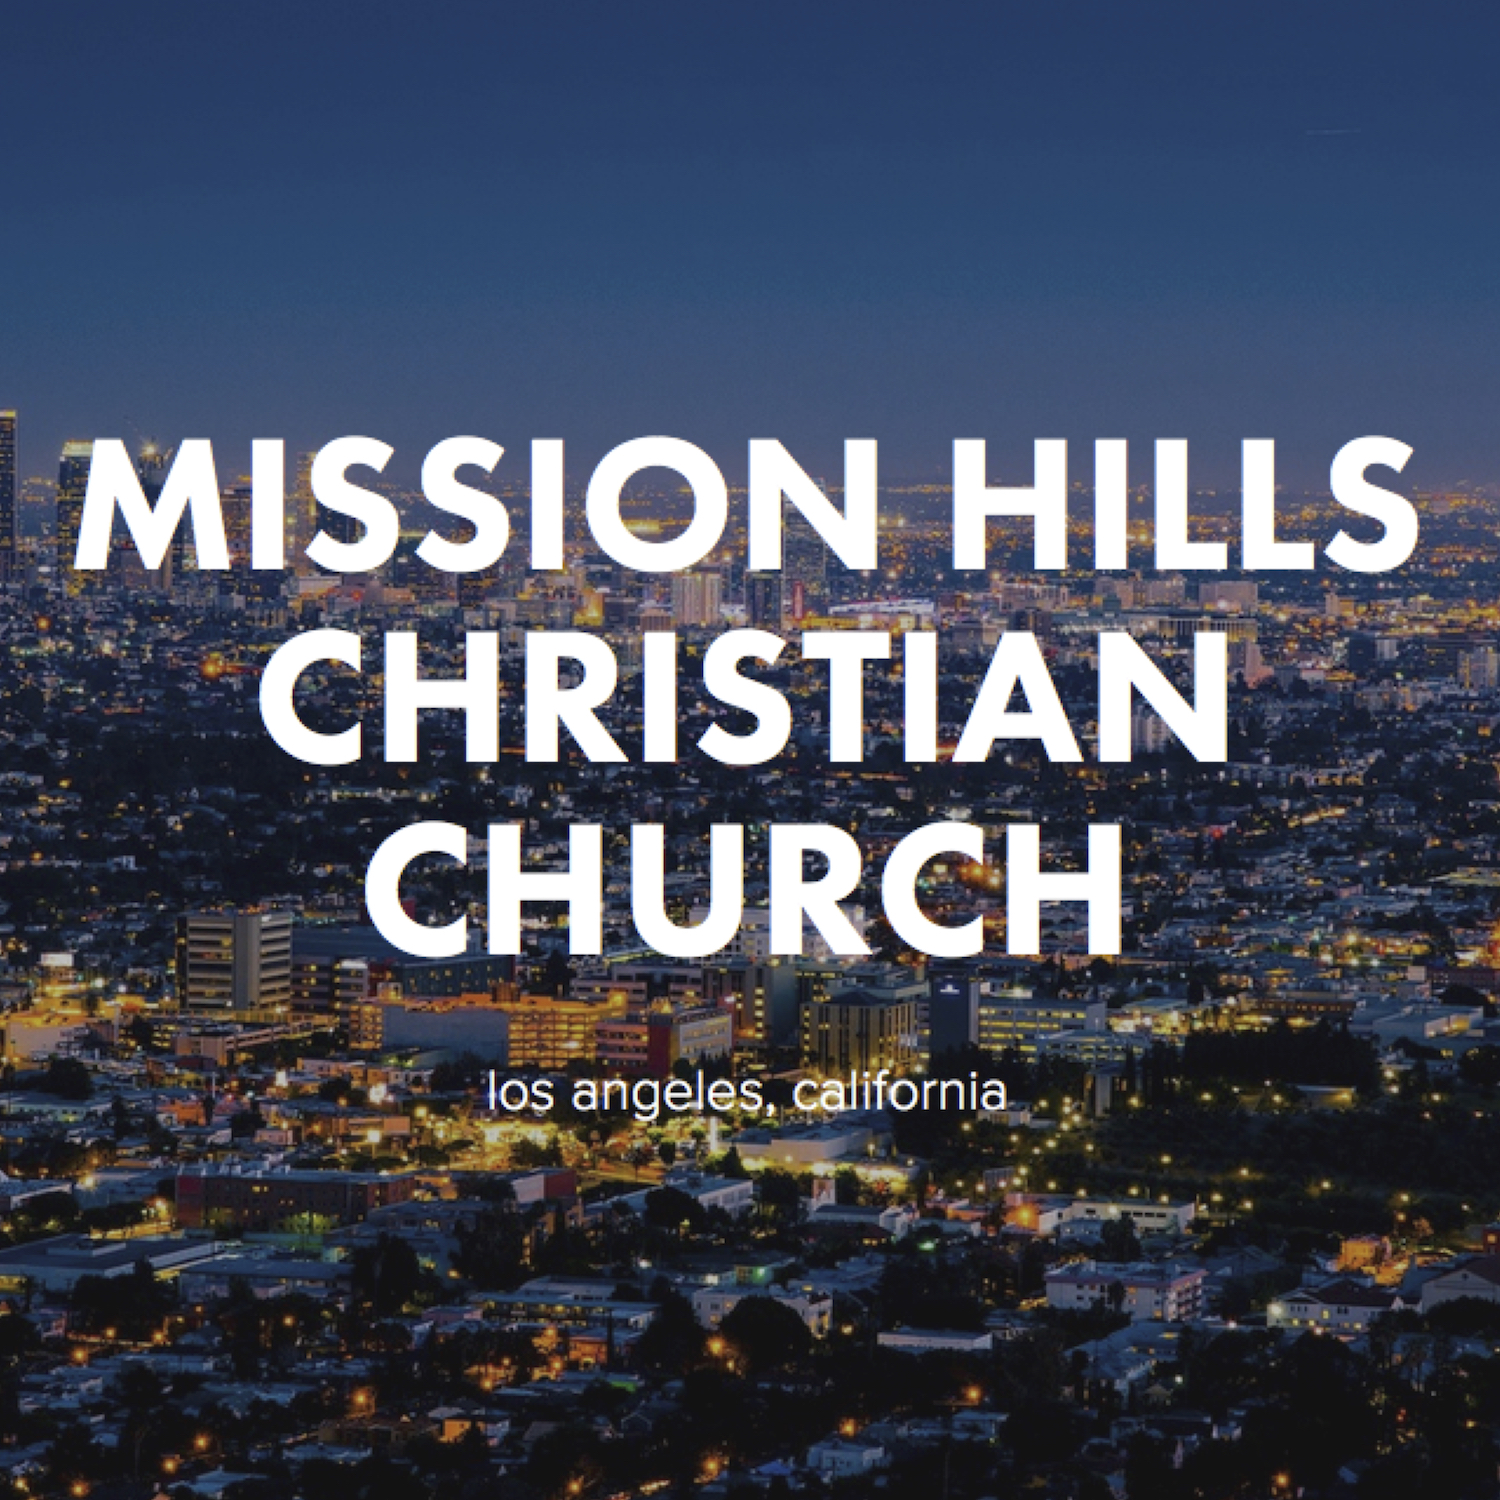 mission hills christian women dating site Mission hills (news 8/cns) - a wood-frame construction site went up in flames sunday after witnesses reported a man torched it, and the suspect was shocked with a stun gun as police struggled to arrest him.